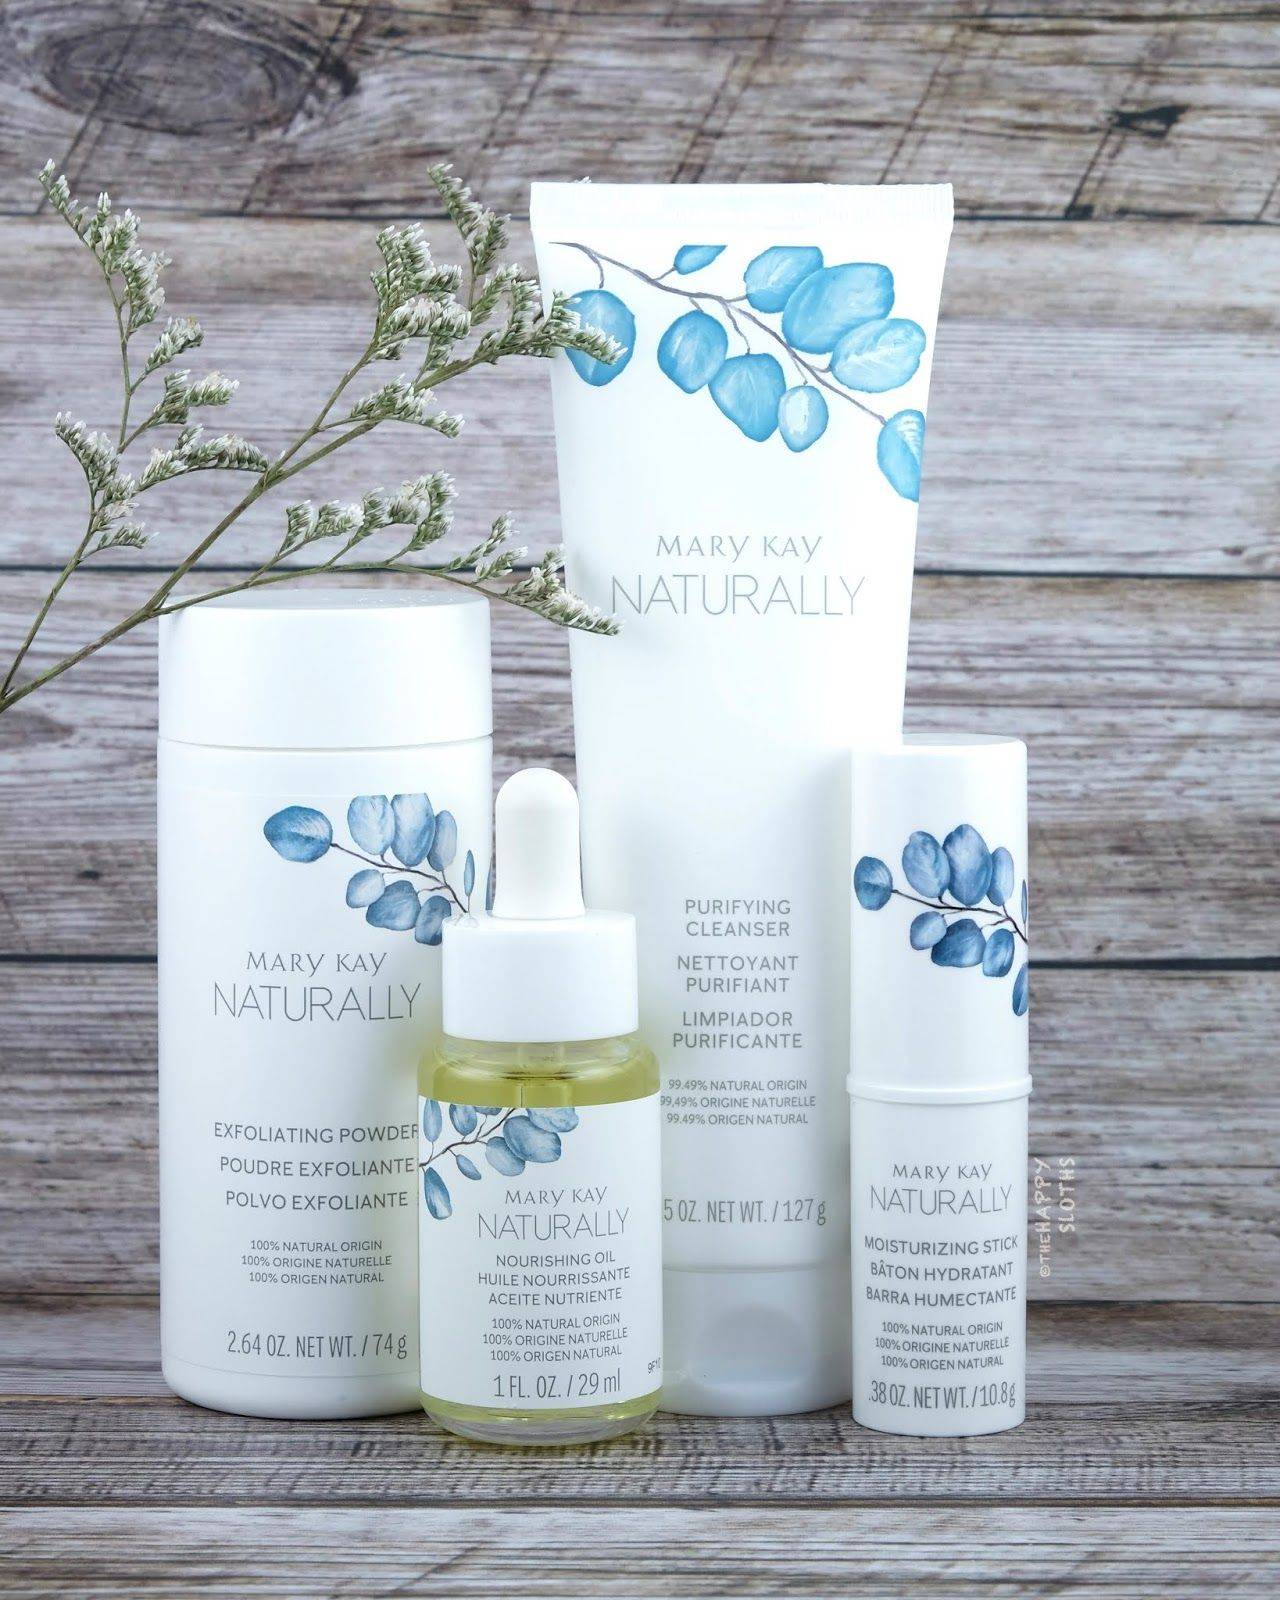 Mary Kay Naturally Skincare Collection Review In 2020 Mary Kay Botanical Effects Mary Kay Skin Care Mary Kay Starter Kit